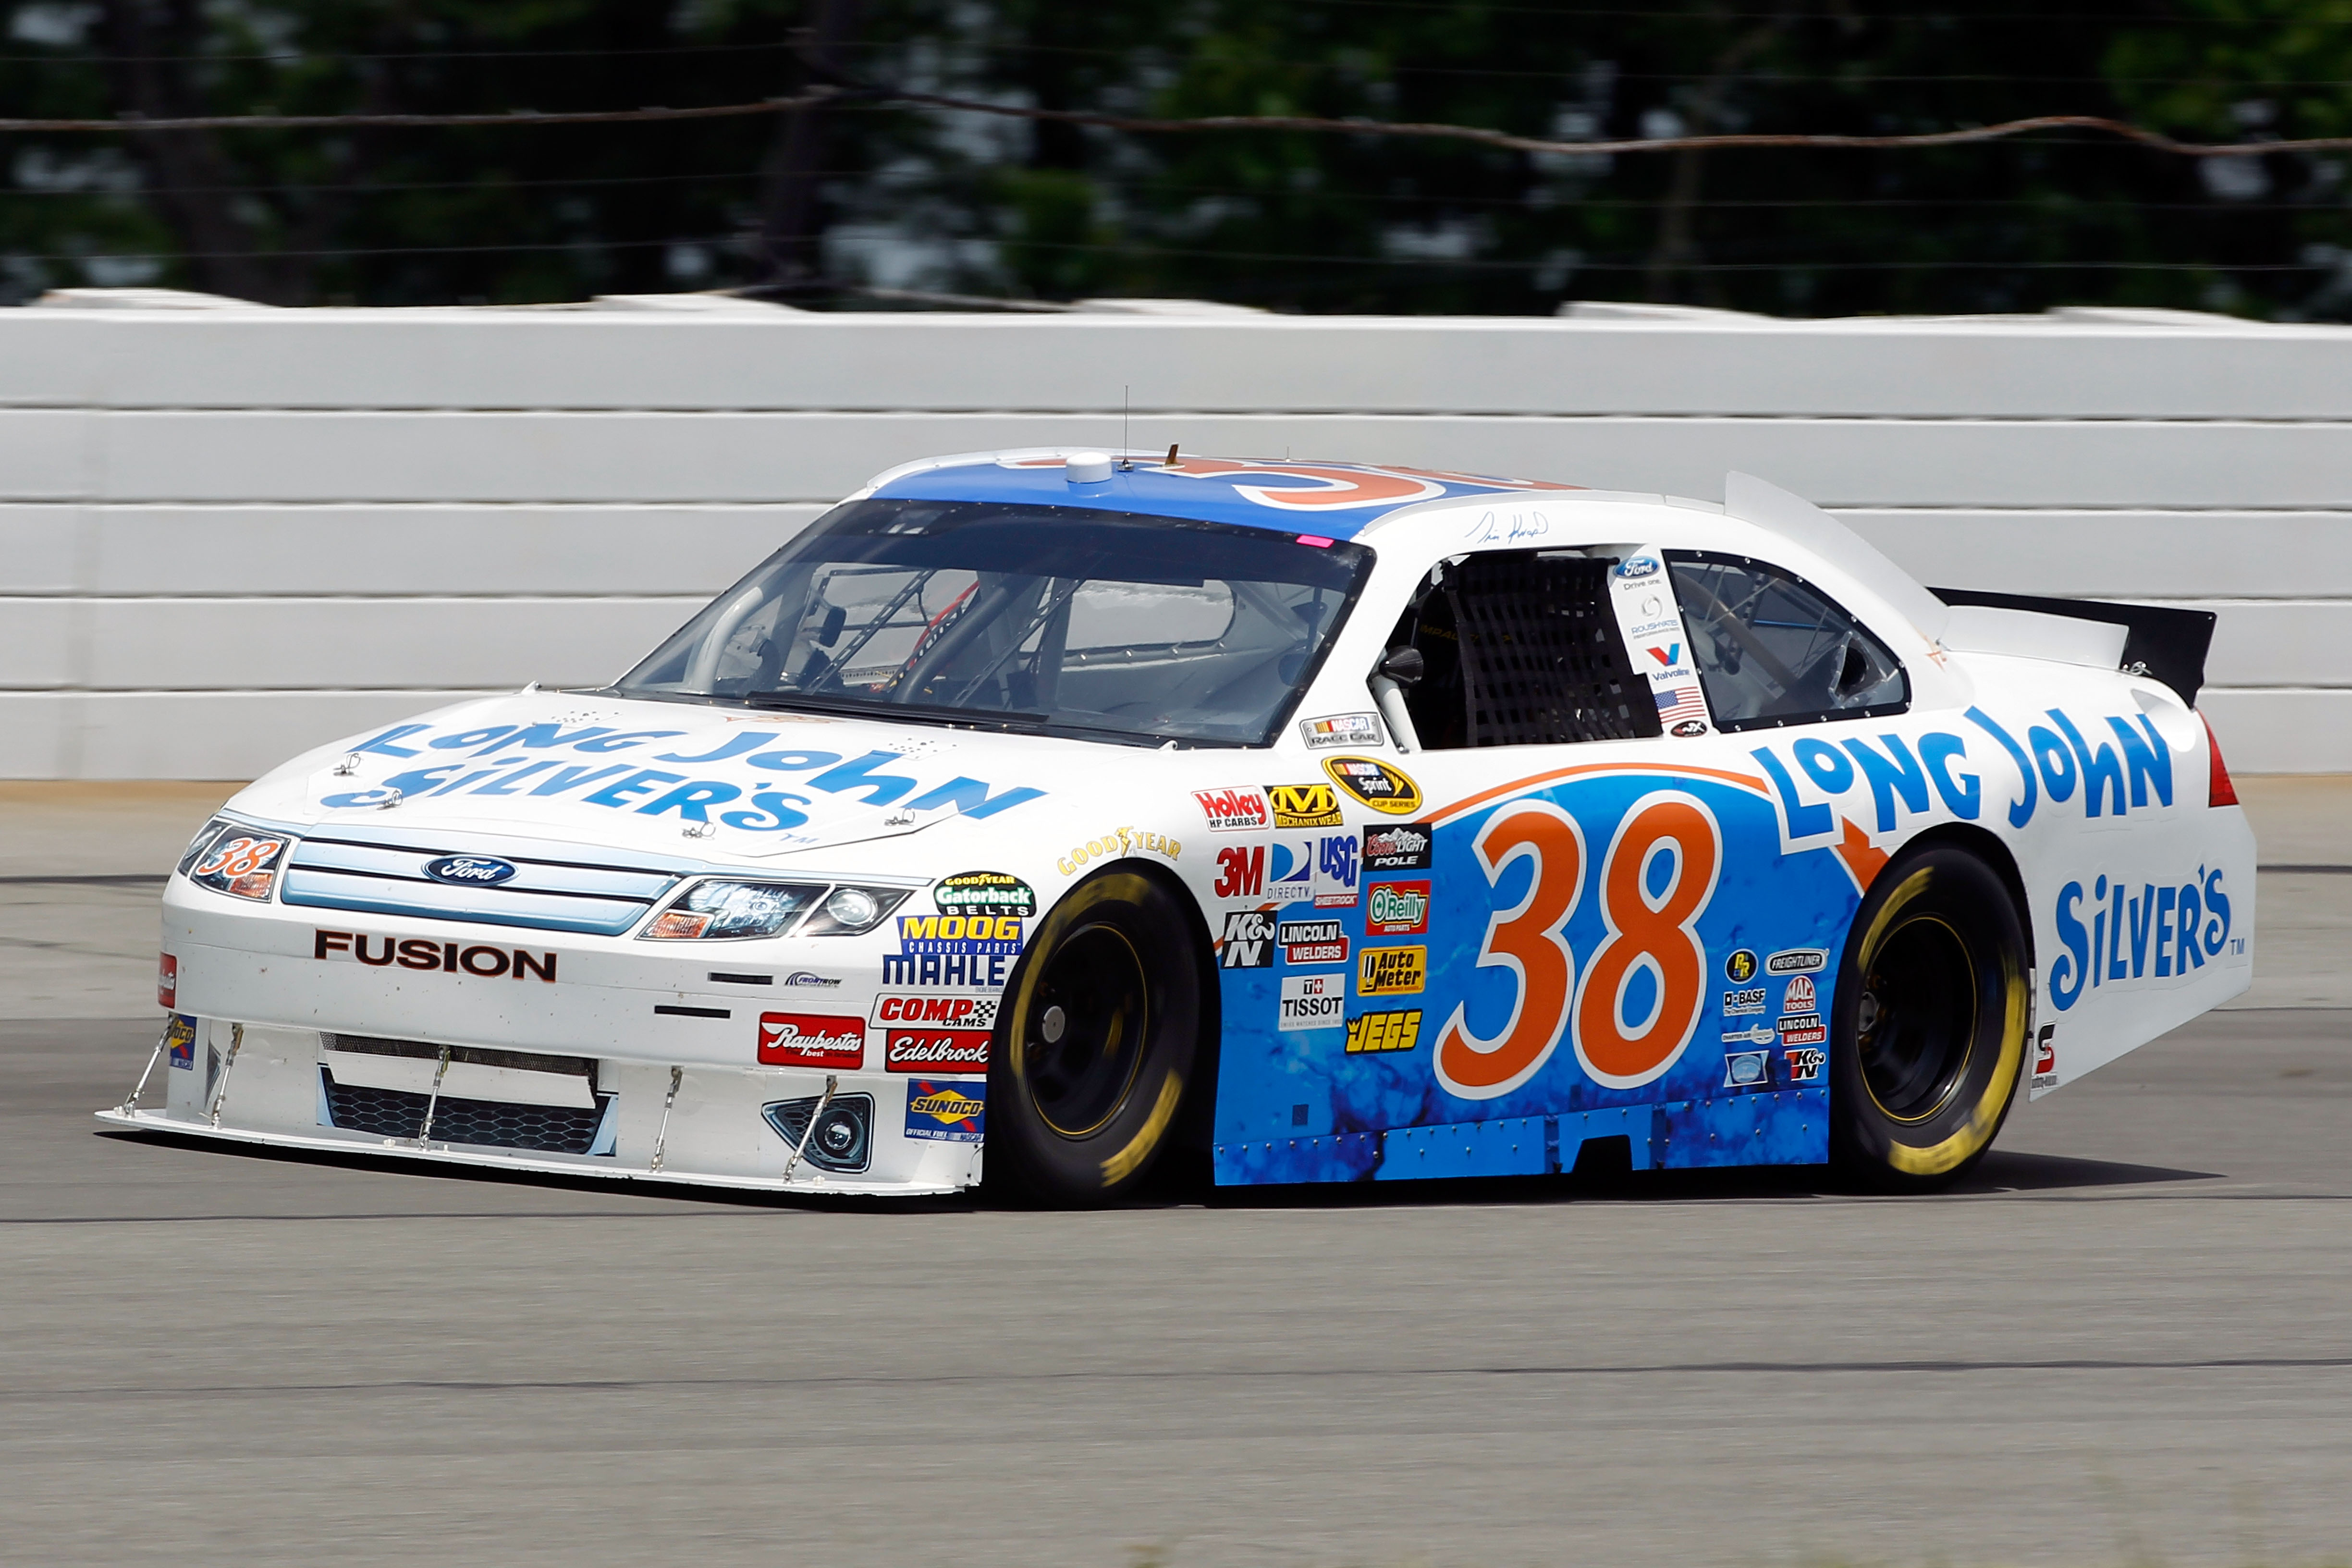 LONG POND, PA - JUNE 04:  Travis Kvapil drives the #38 Long John Silver's/Baja Fish Taco Ford during practice for the NASCAR Sprint Cup Series Gillette Fusion ProGlide 500 at Pocono Raceway on June 4, 2010 in Long Pond, Pennsylvania.  (Photo by Chris Trot